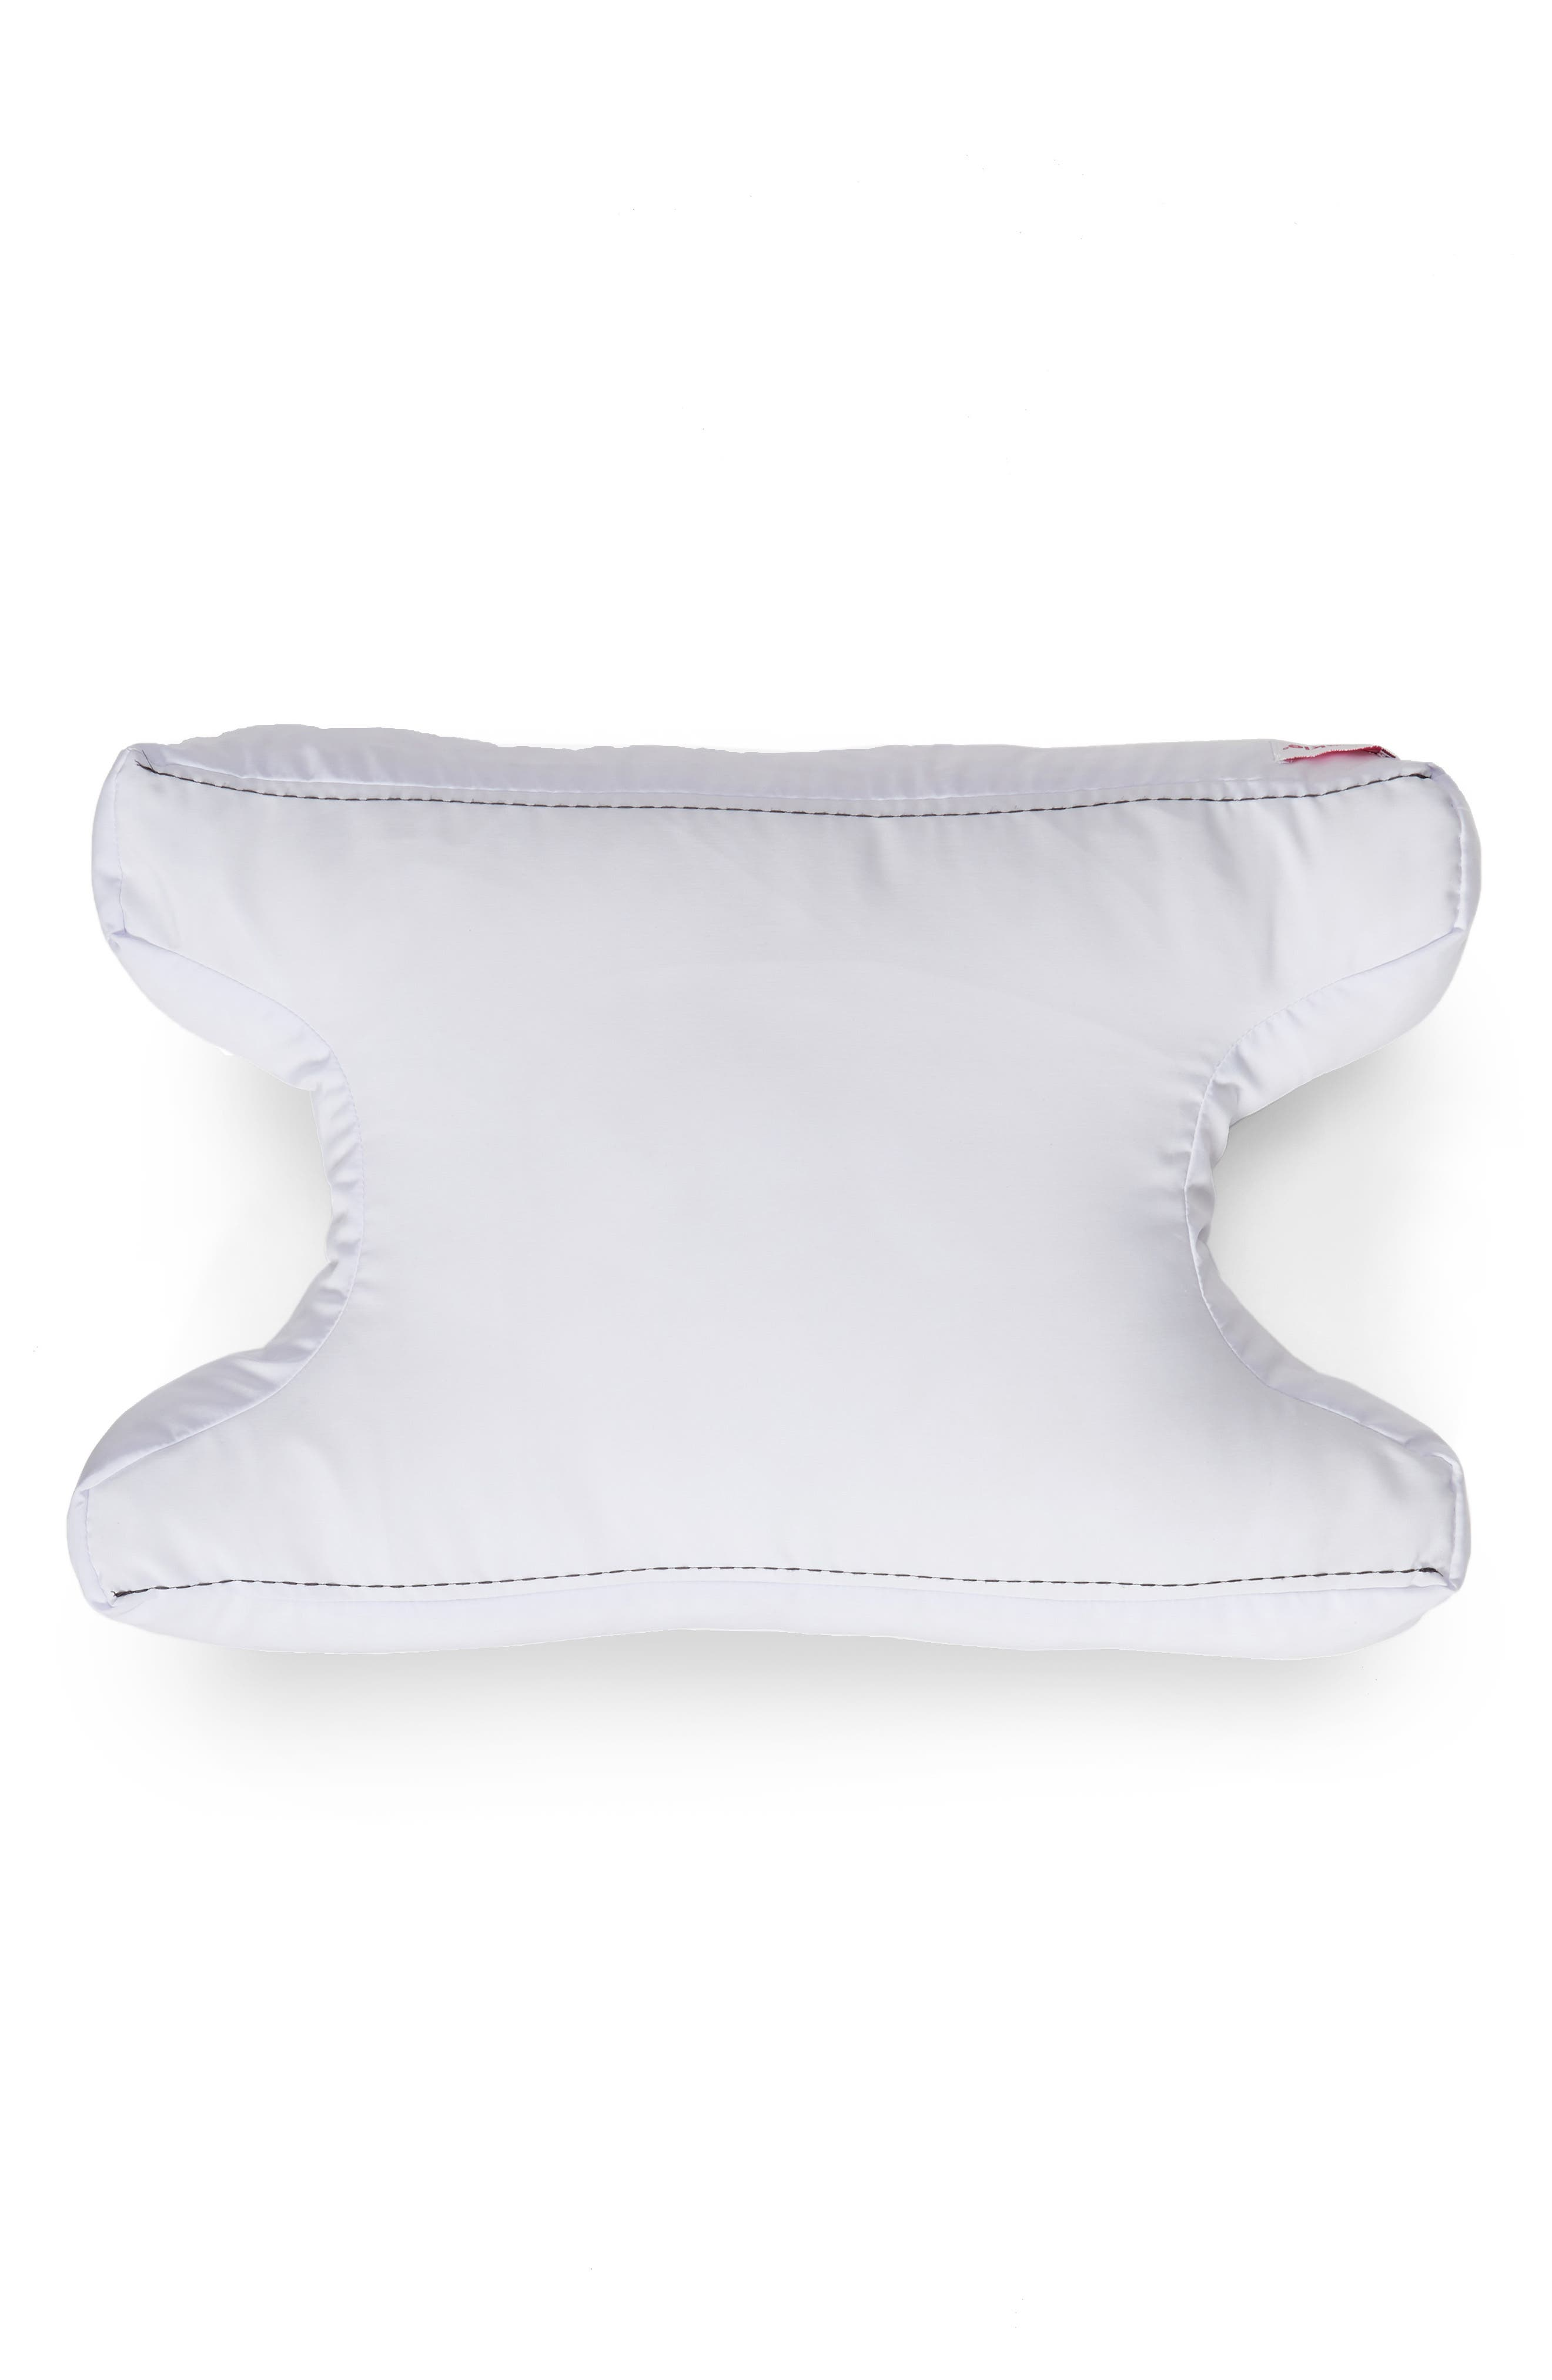 Beauty Pillow,                         Main,                         color, White